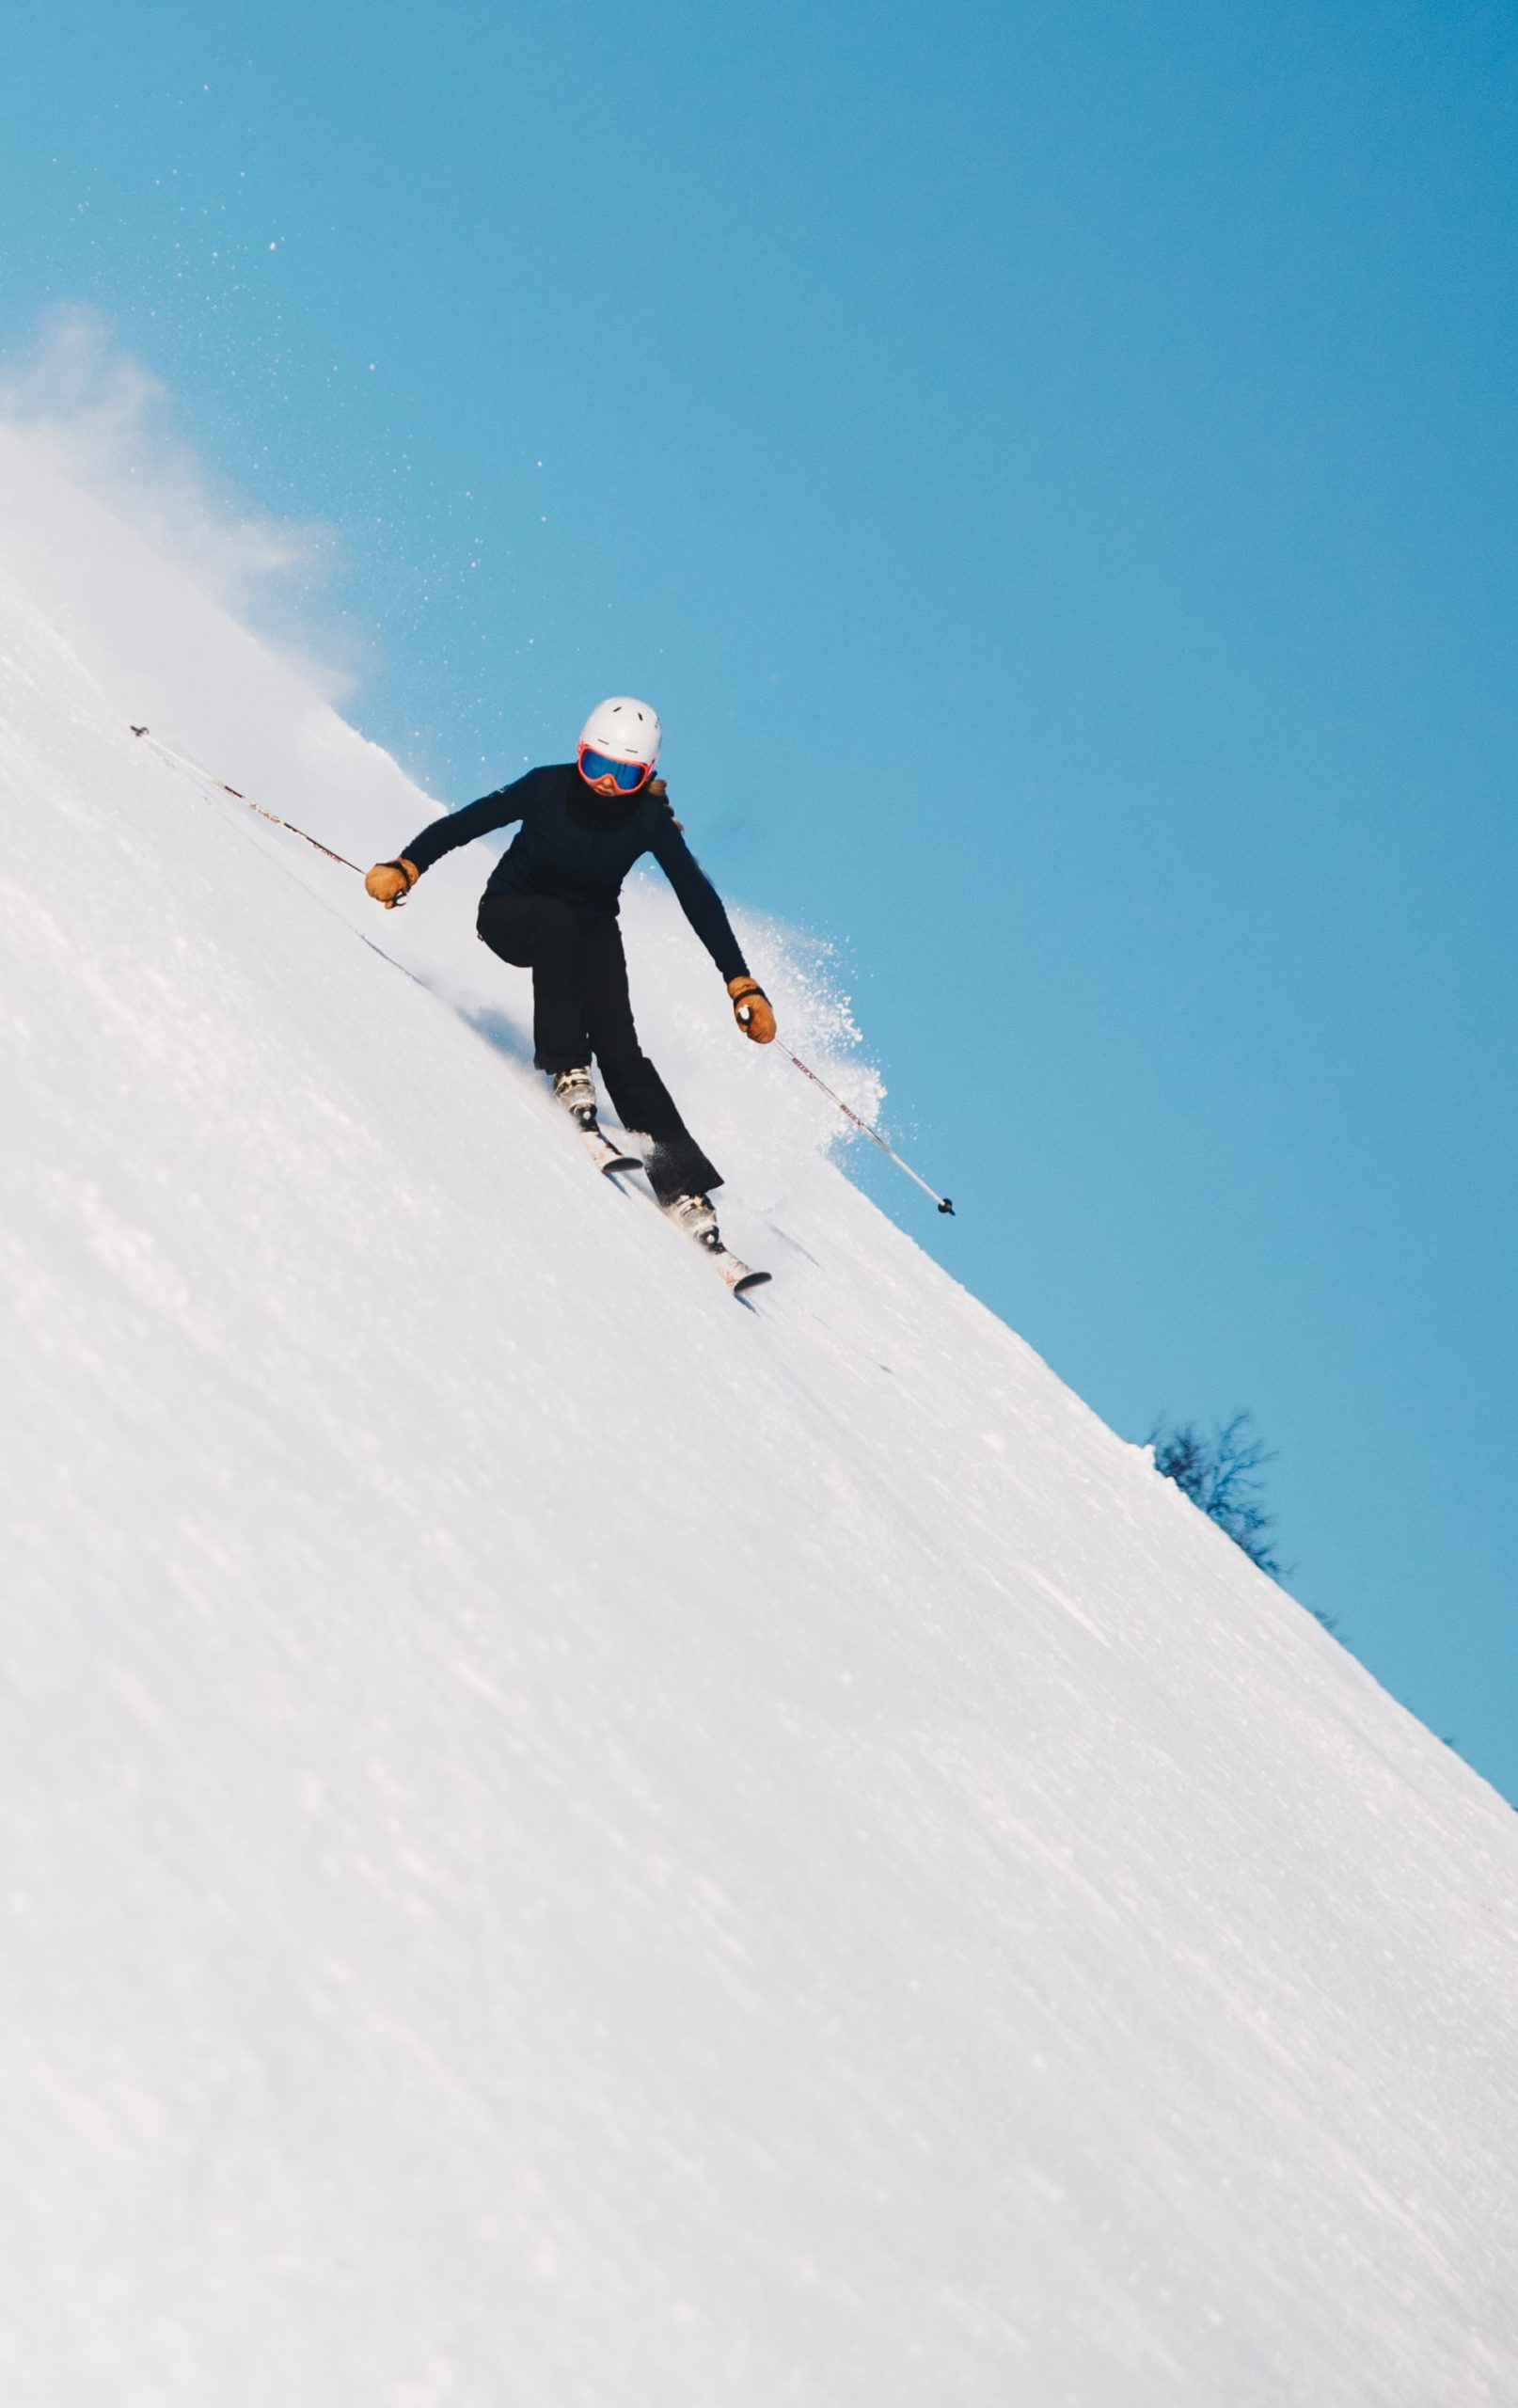 Skiing: A Few Important Tips For Beginners